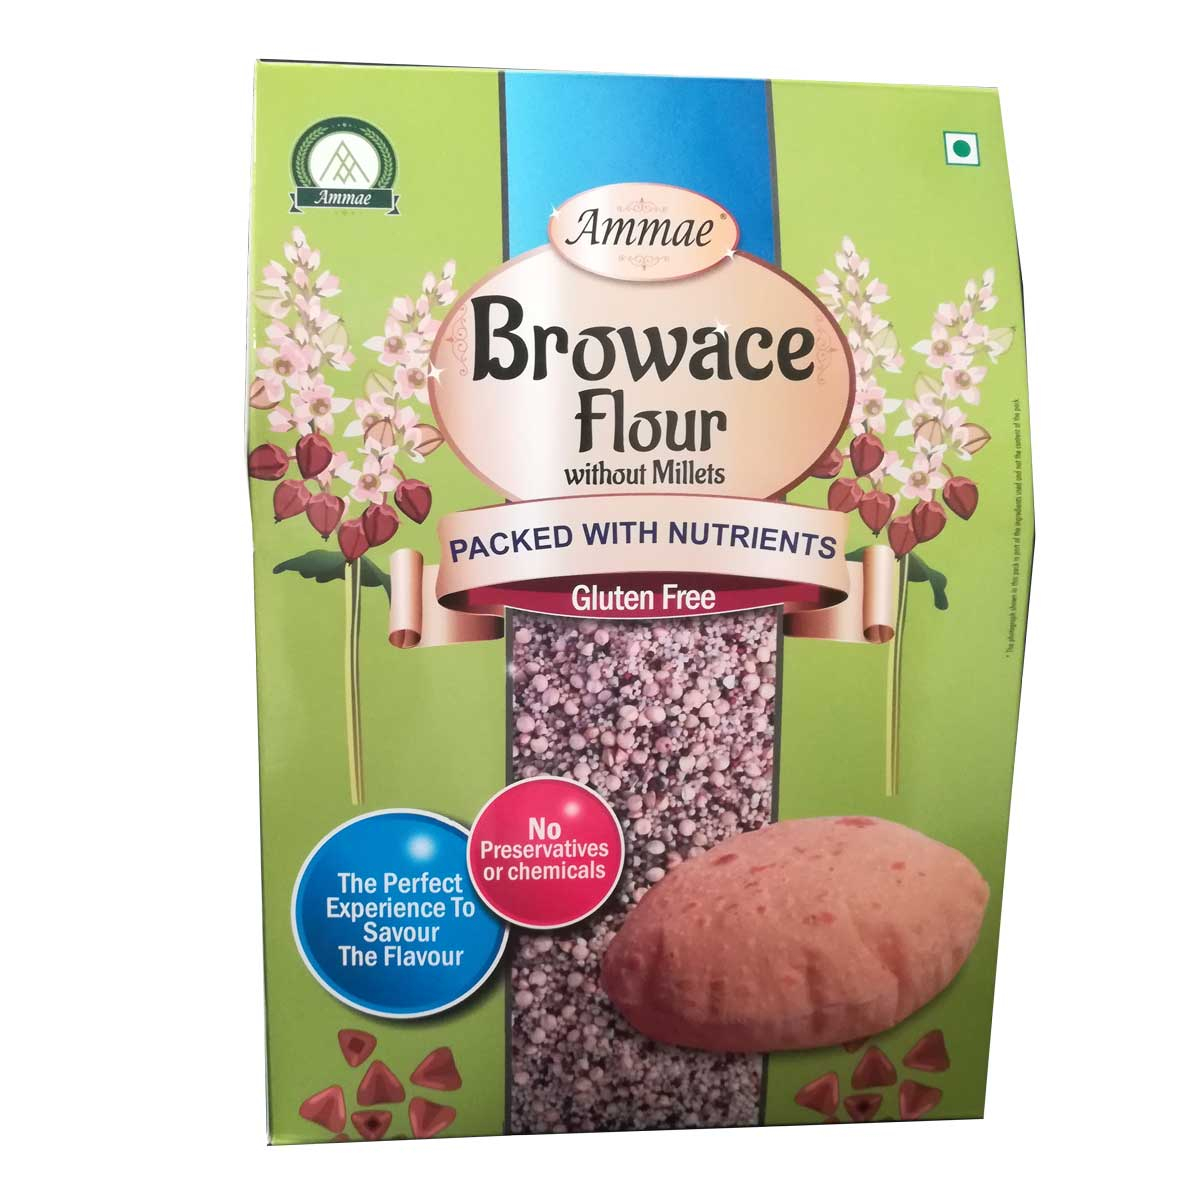 Browace Flour (Gluten free without millets)